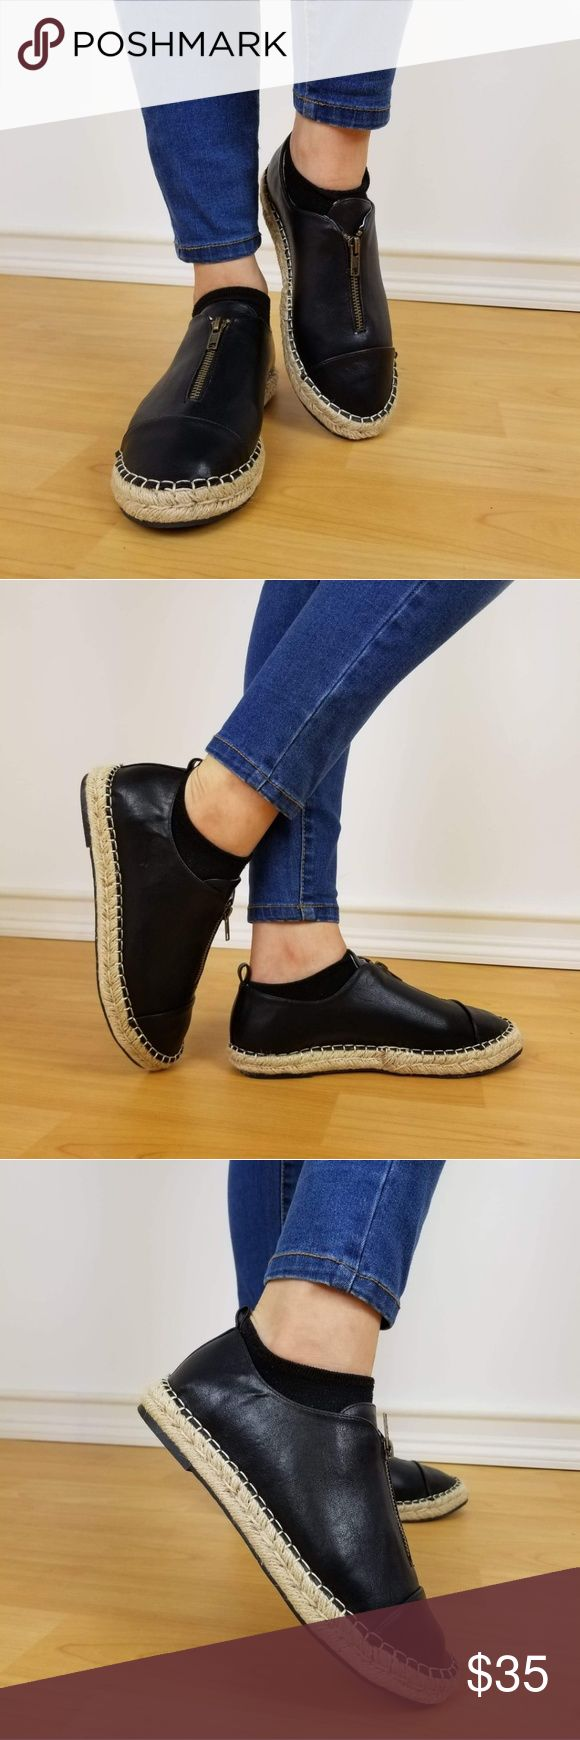 black slip on shoes black shoes Black loafer faux leather slip on shoe .  -comfort insoles - suggested to size up half a size -cute espadrille stitching  -functioning zipper for easy slip of foot see pics please like it send an offer  thank you for shopping! Shoes